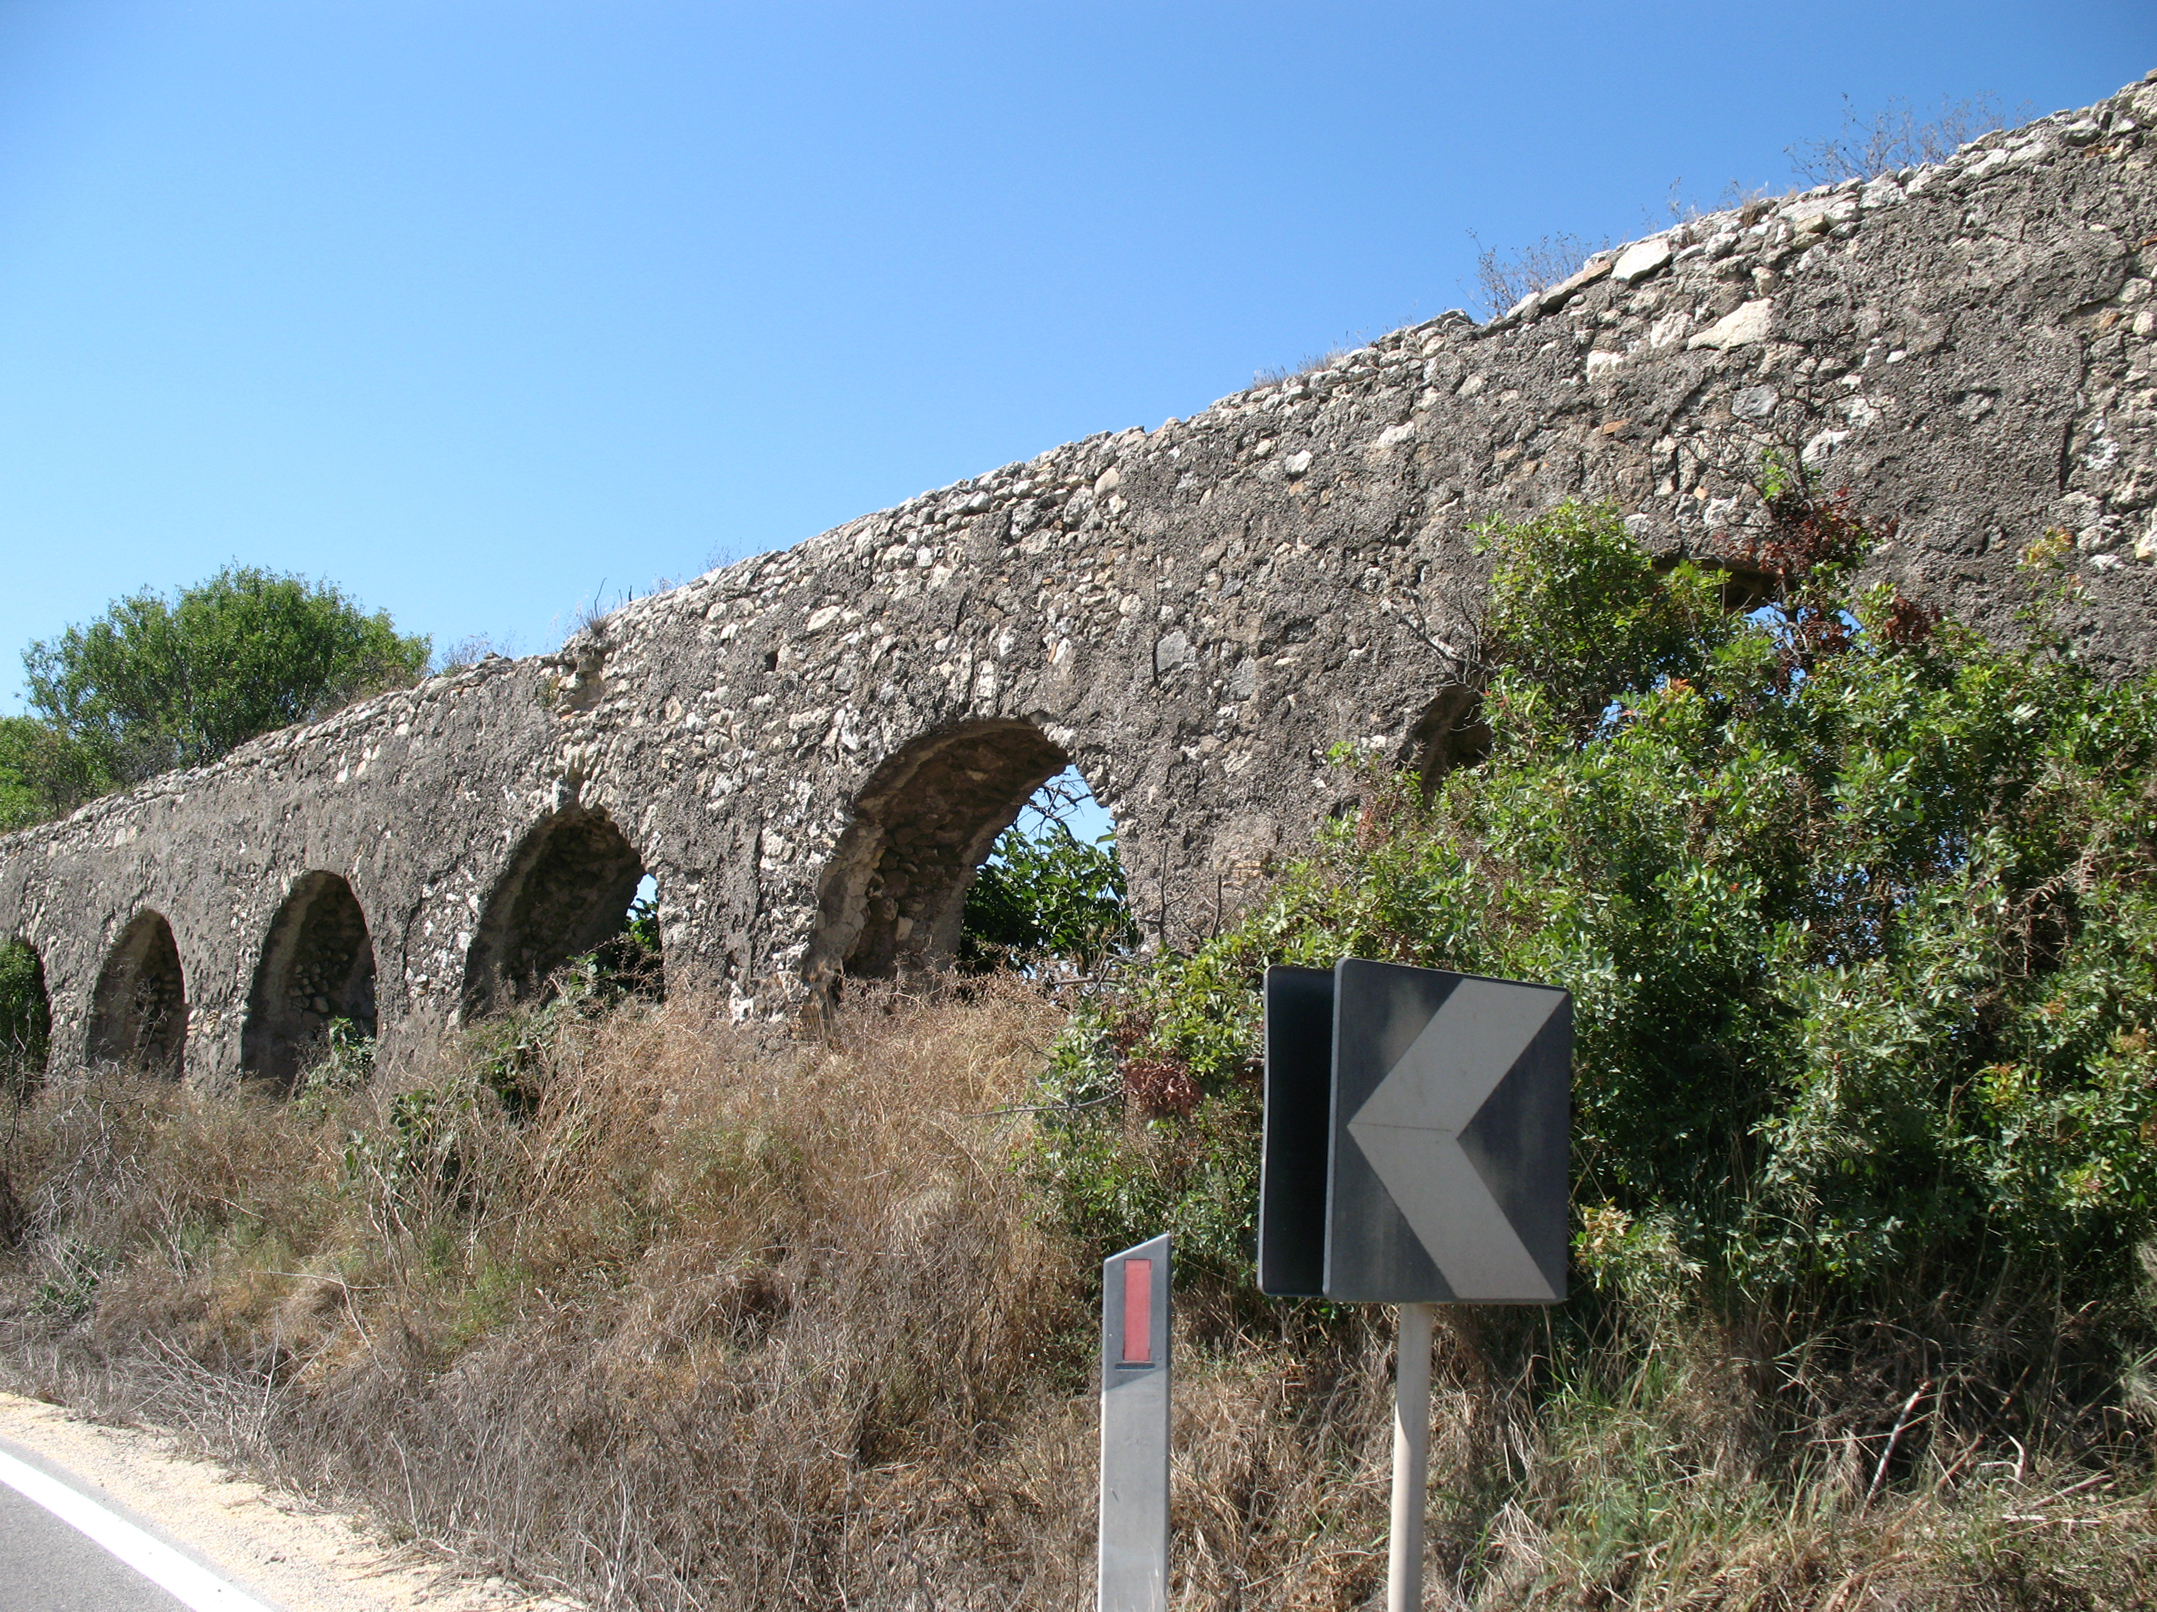 Roman aqueduct near the road.